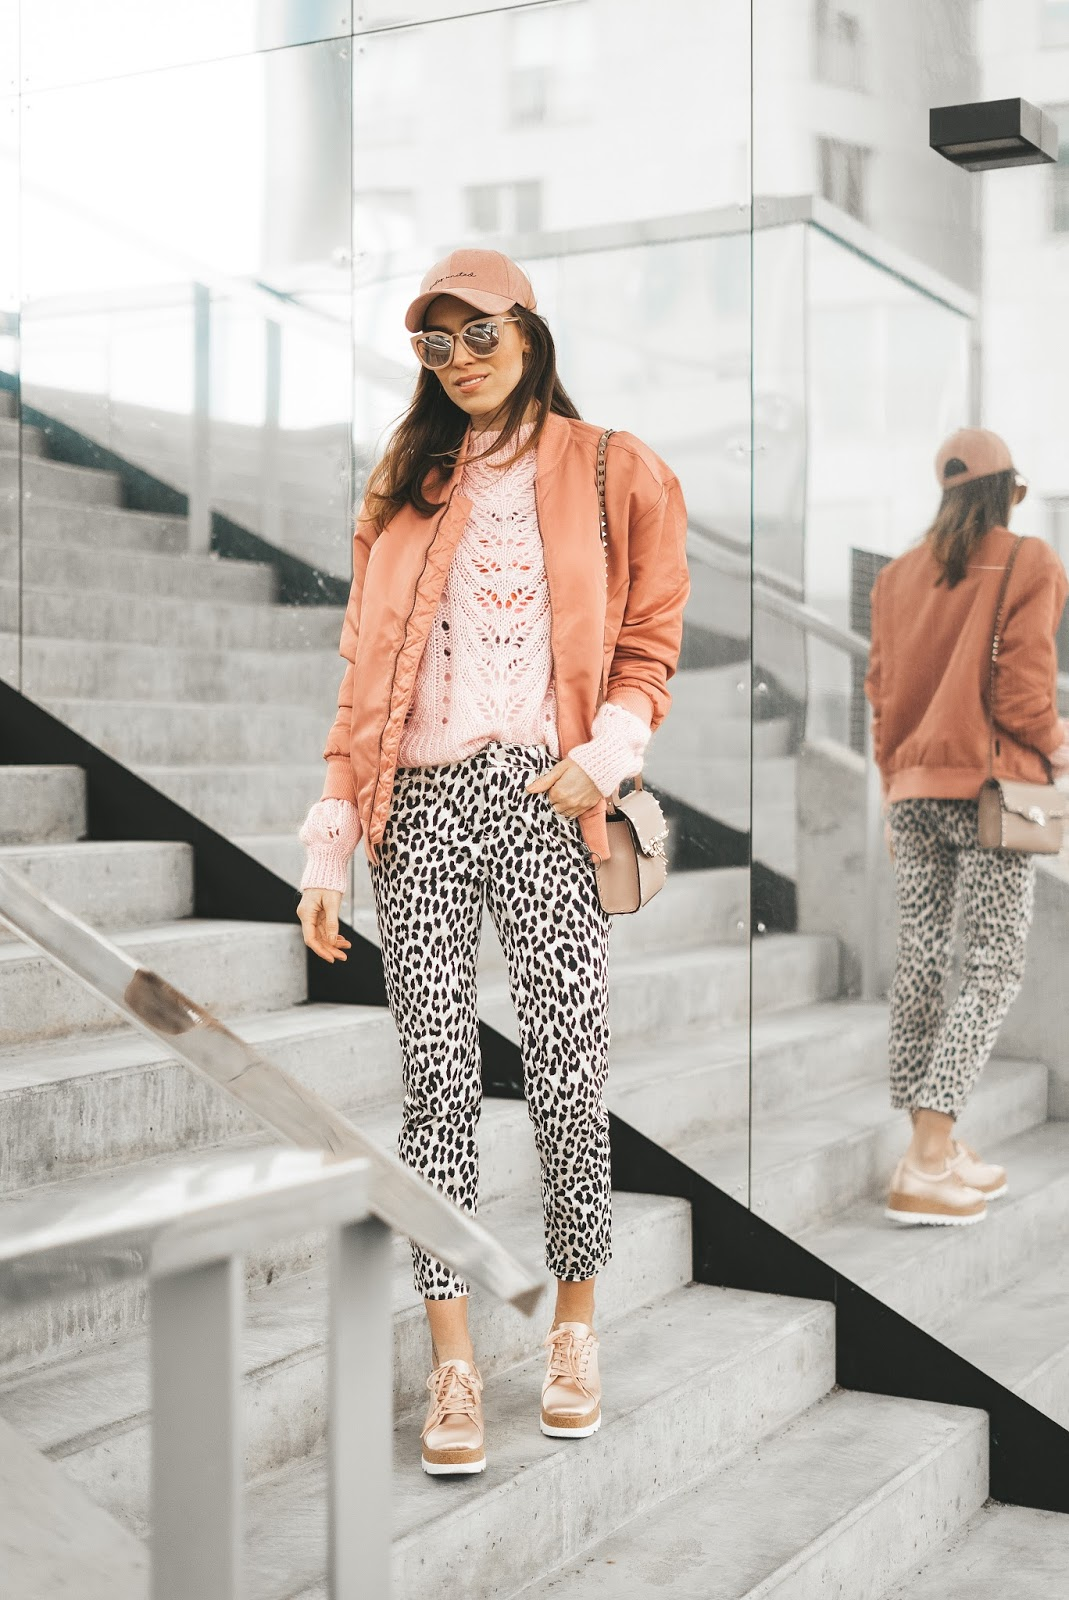 pink bomber jumper cap leopard print pants spring outfit